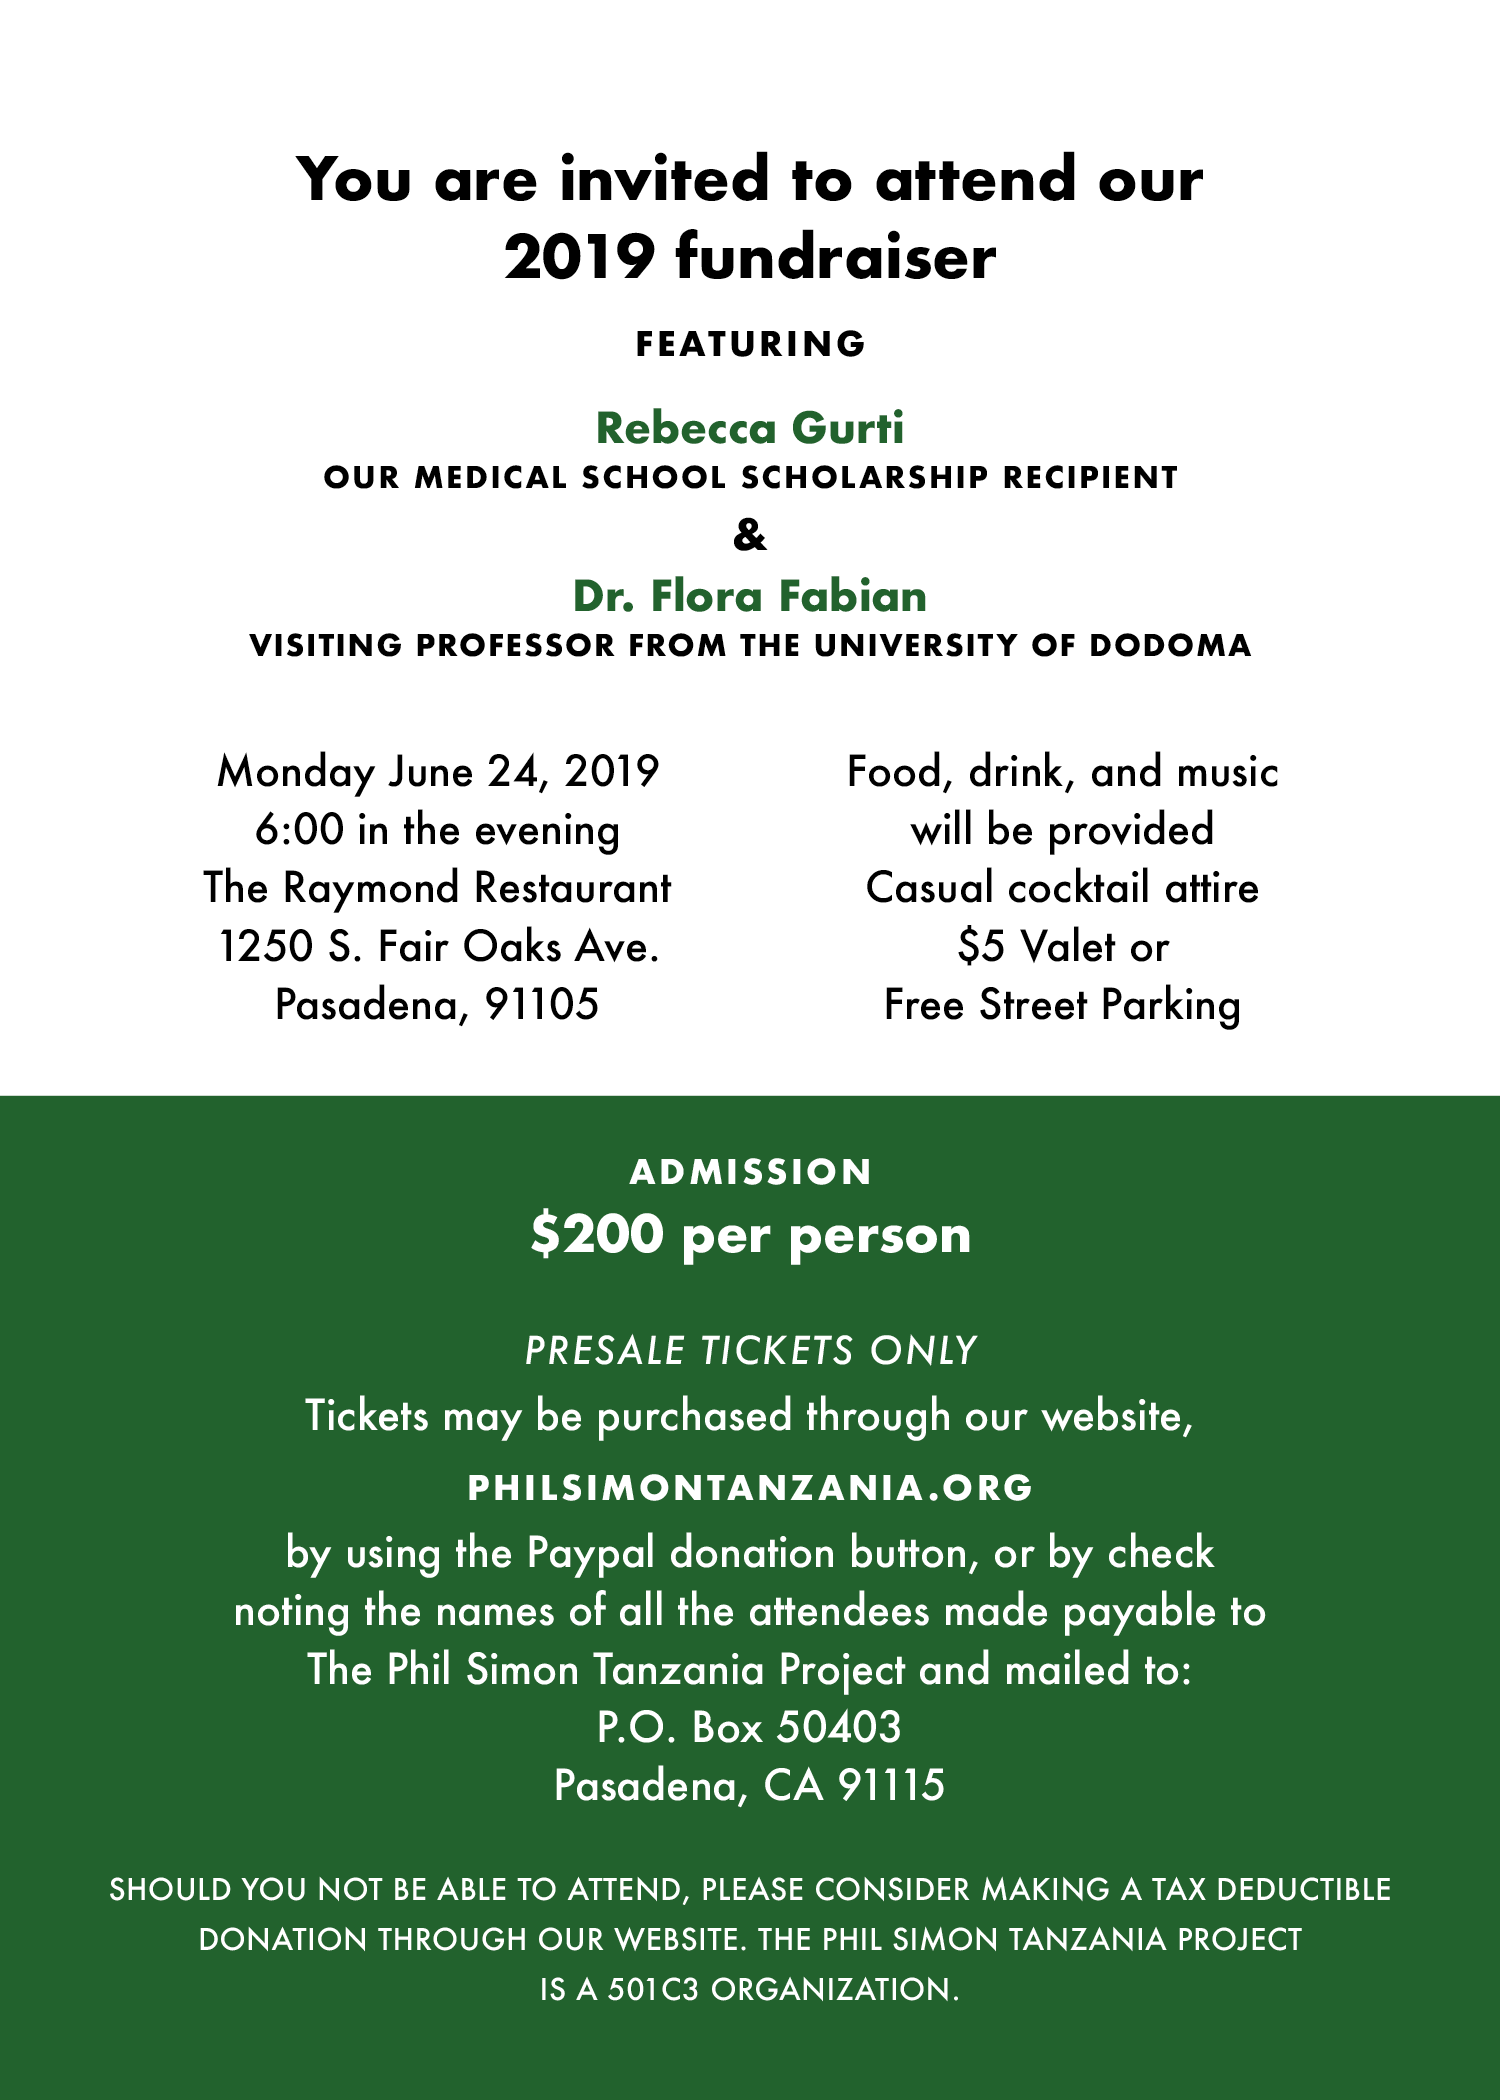 PURCHASE TICKETS NOW FOR JUNE 24TH FUNDRAISER!